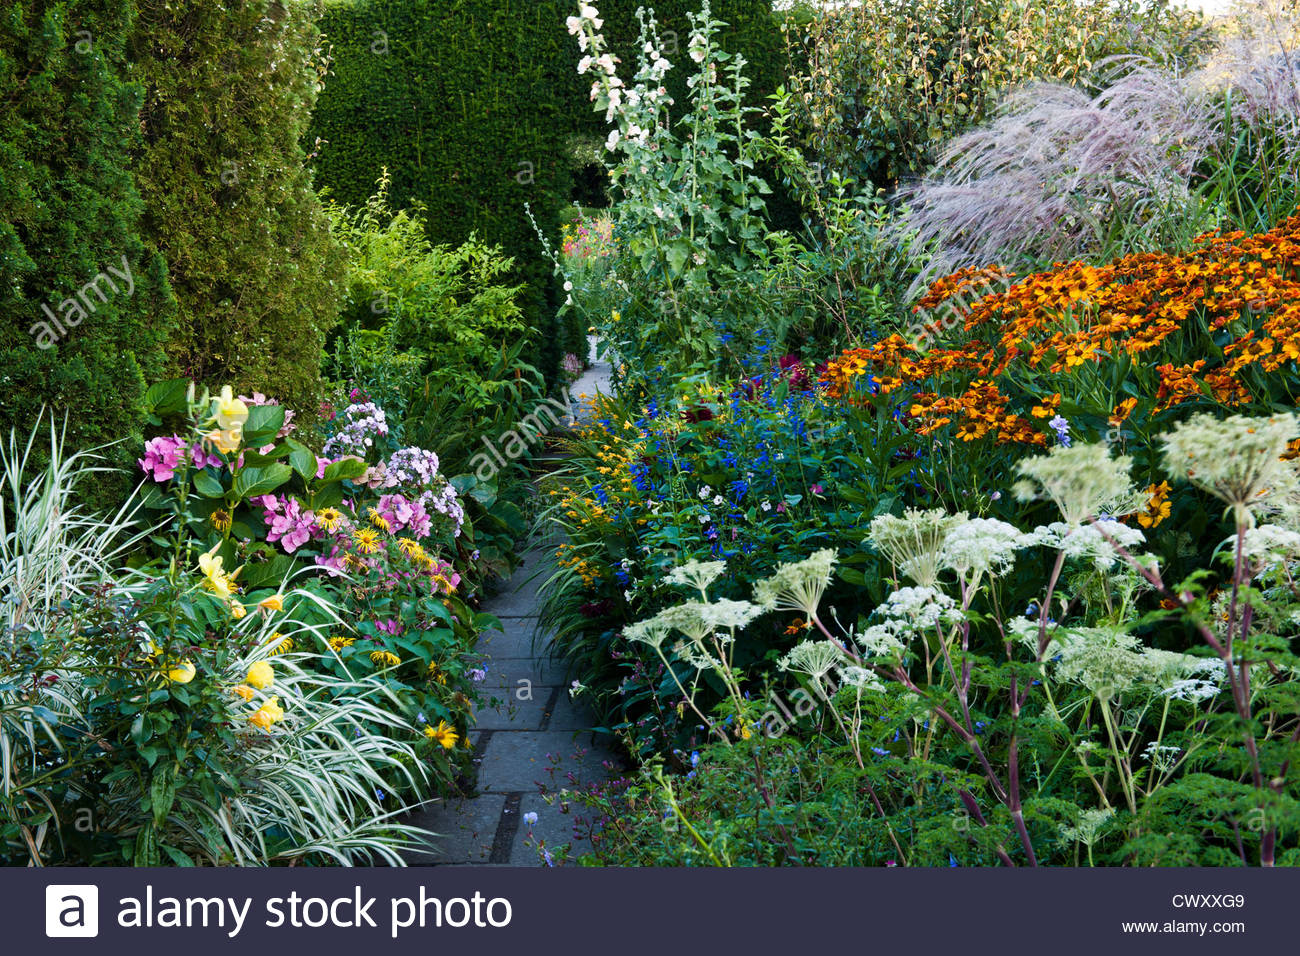 Summer flower plant combination helenium stock photos summer great dixter garden late summer flower borders perennials september path stone hedge yew arch east suusex mightylinksfo